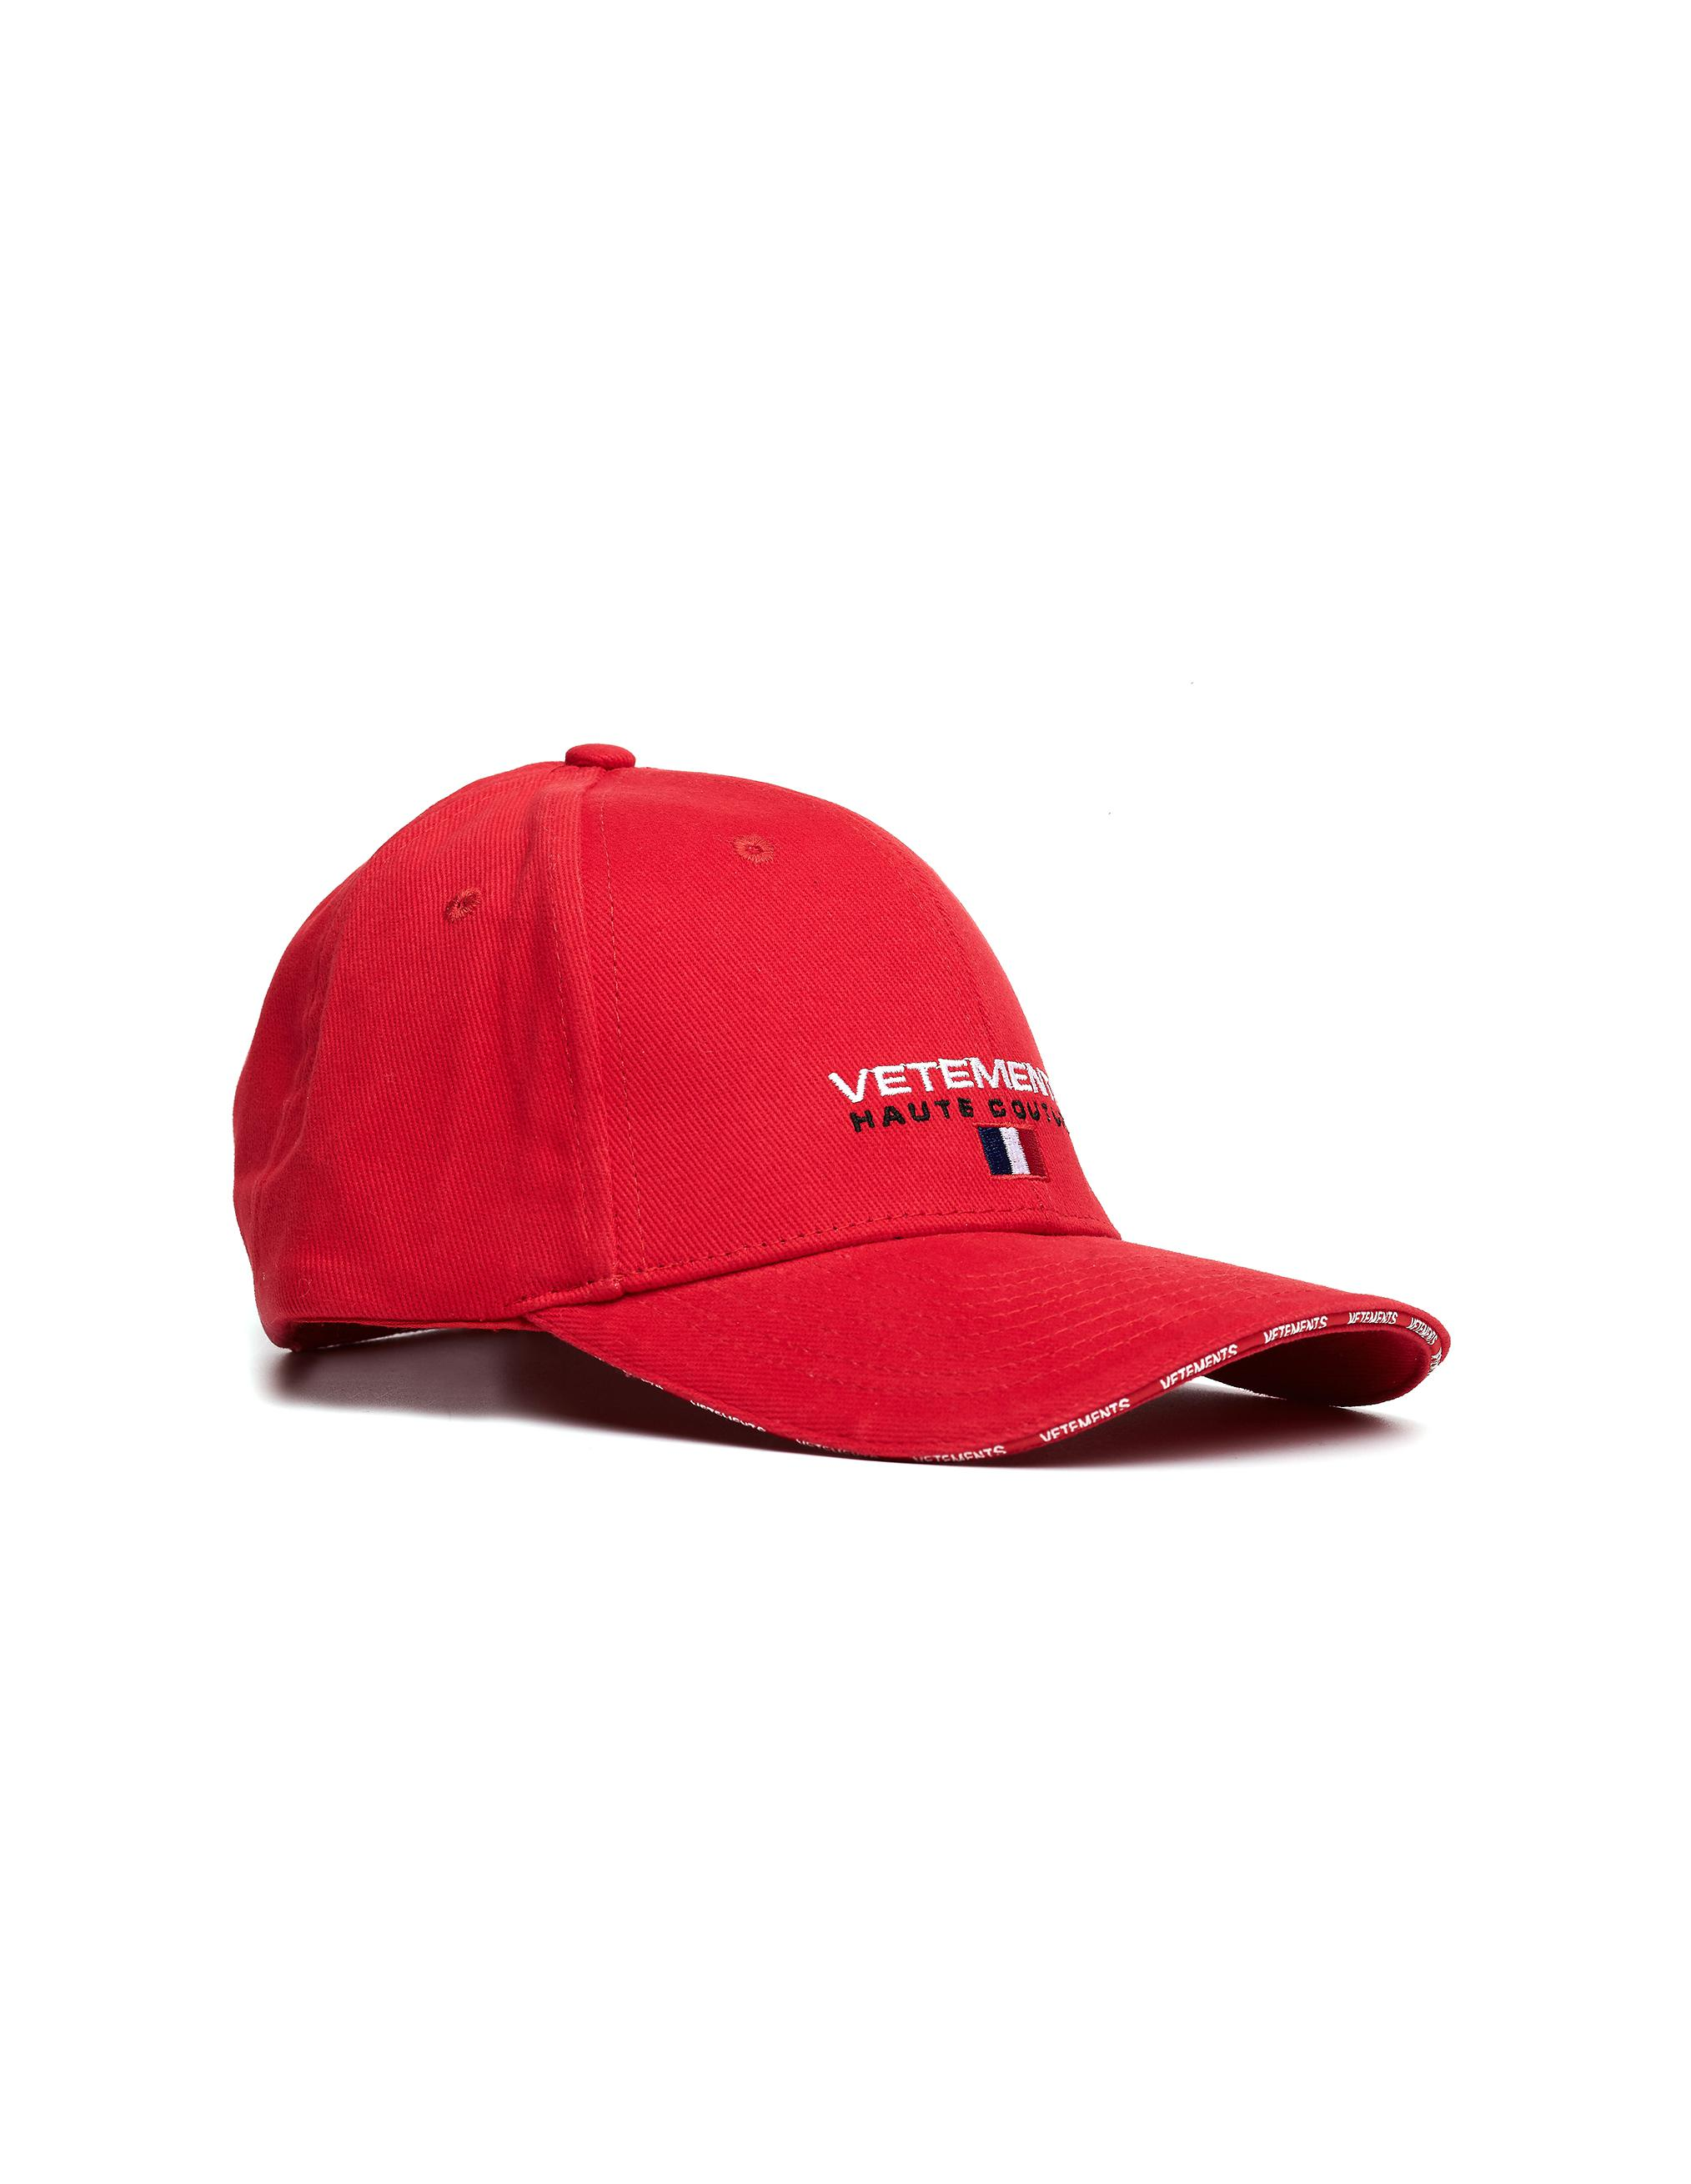 Mens Haute Couture-Embroidered Cotton Baseball Hat VETEMENTS 645jx3owgK